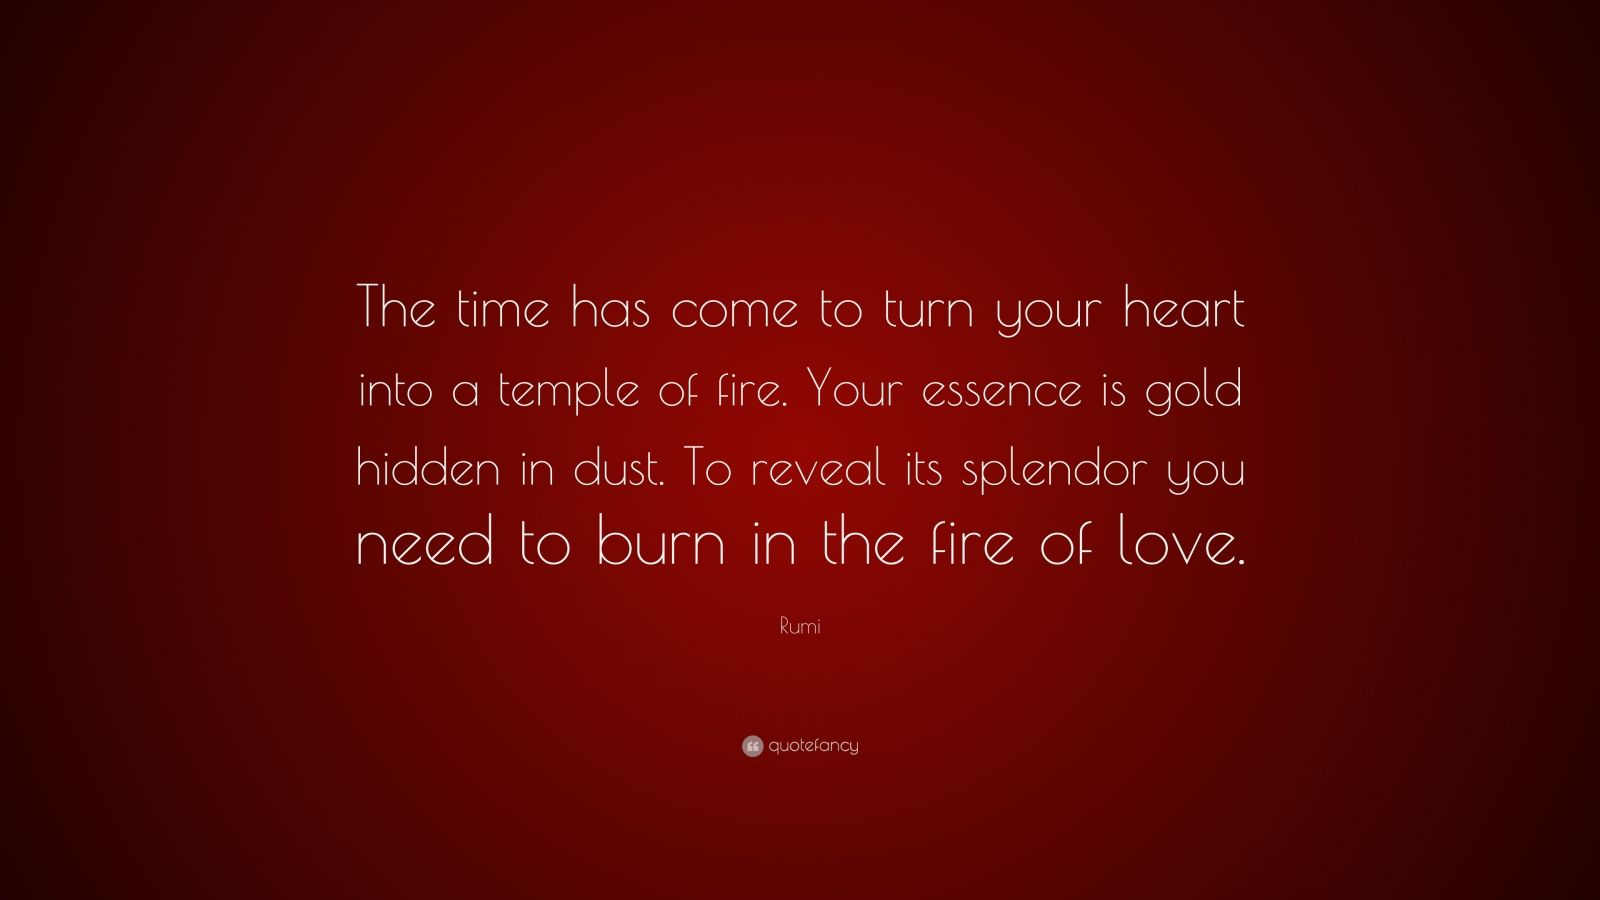 Quotes Rumi Rumi Quotes 100 Wallpapers  Quotefancy